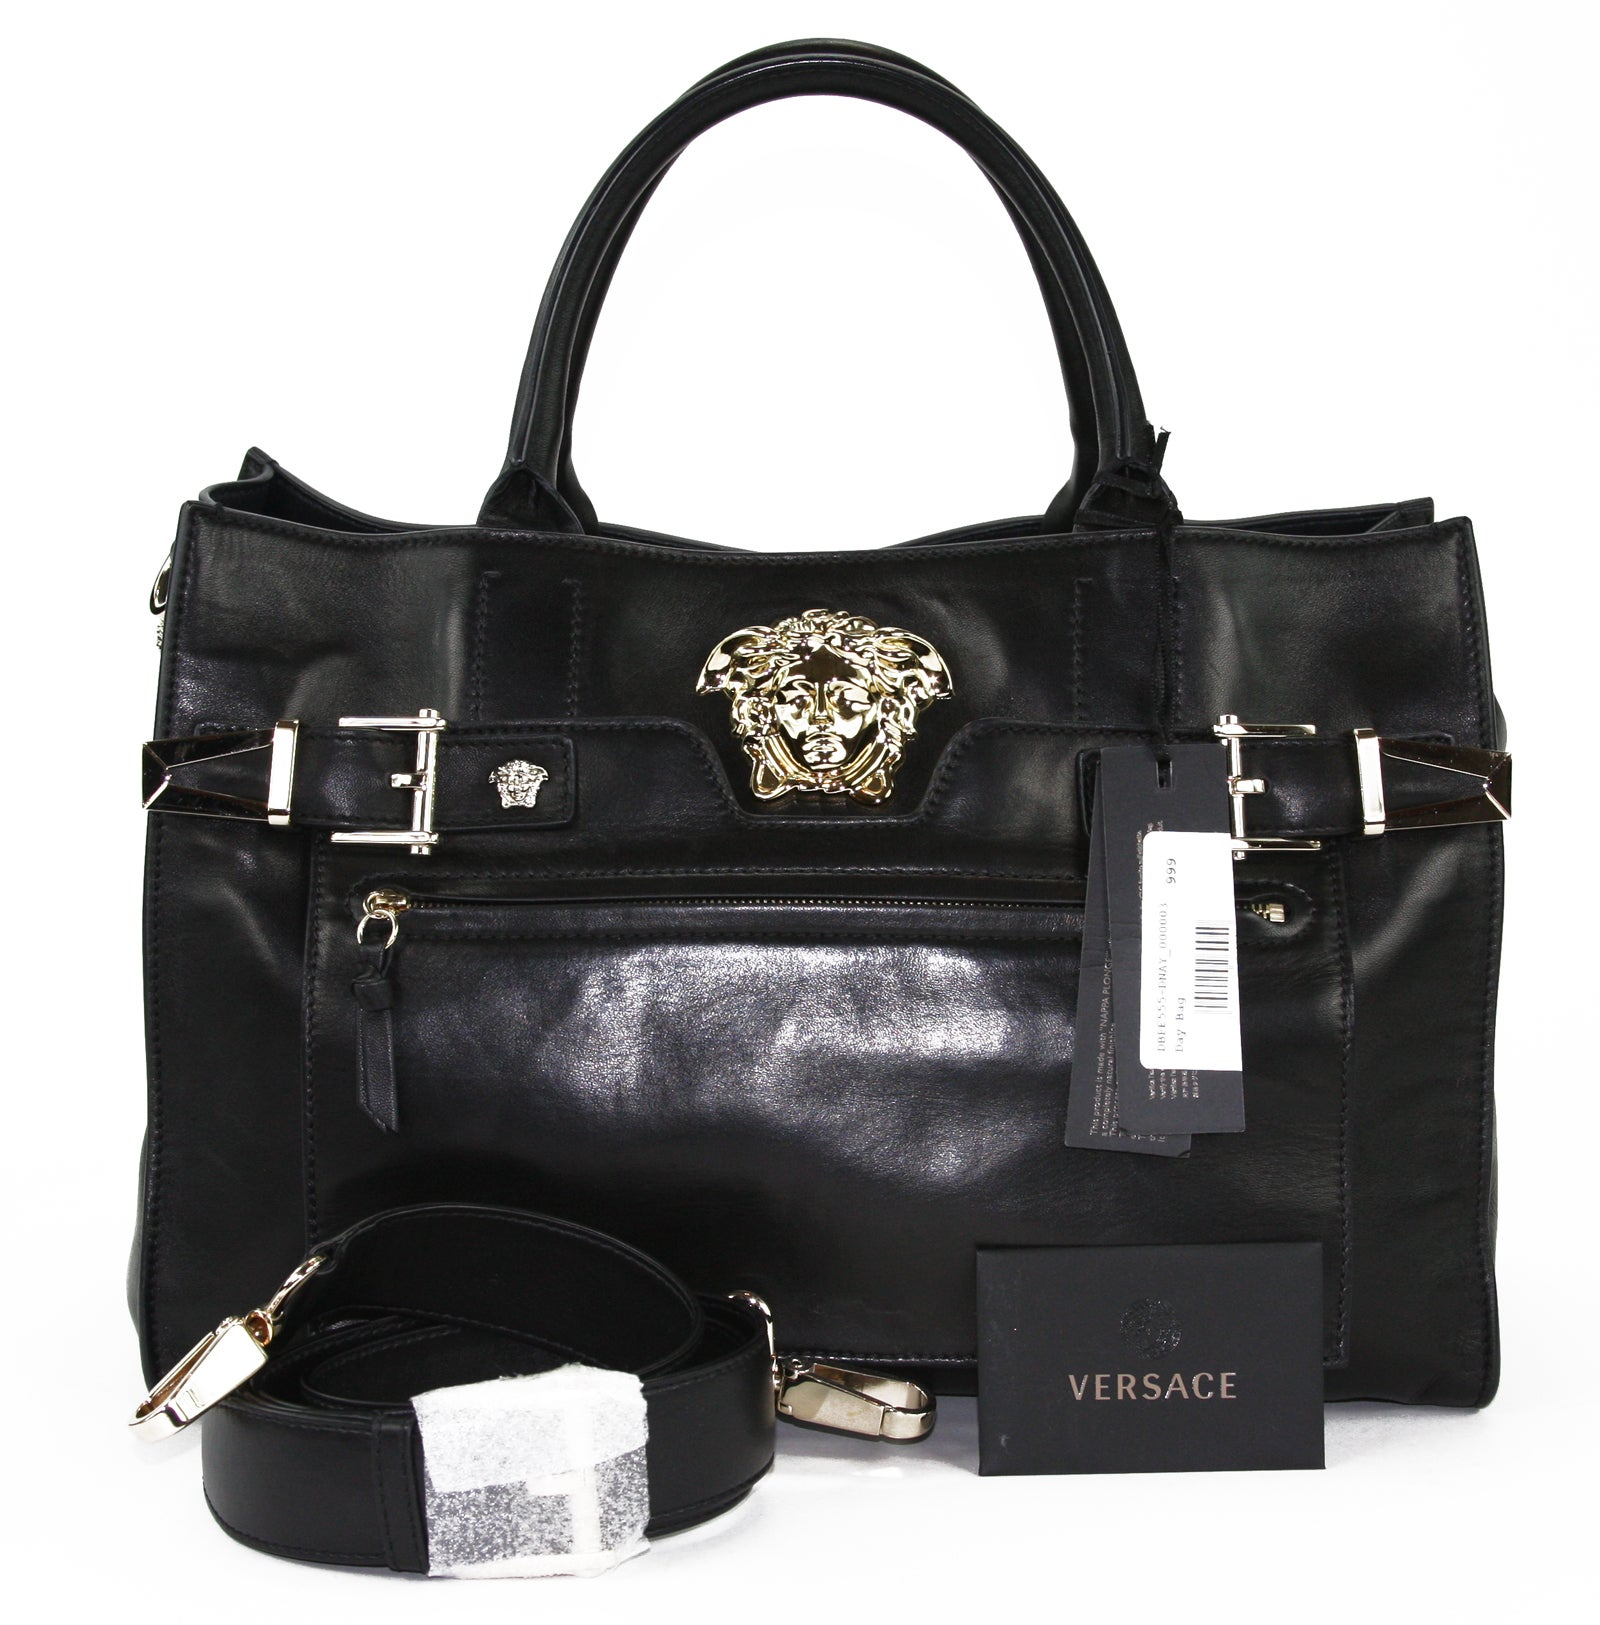 New Versace Palazzo Large Black Leather Shoulder Bag Handbag at 1stdibs 681e37f130dce